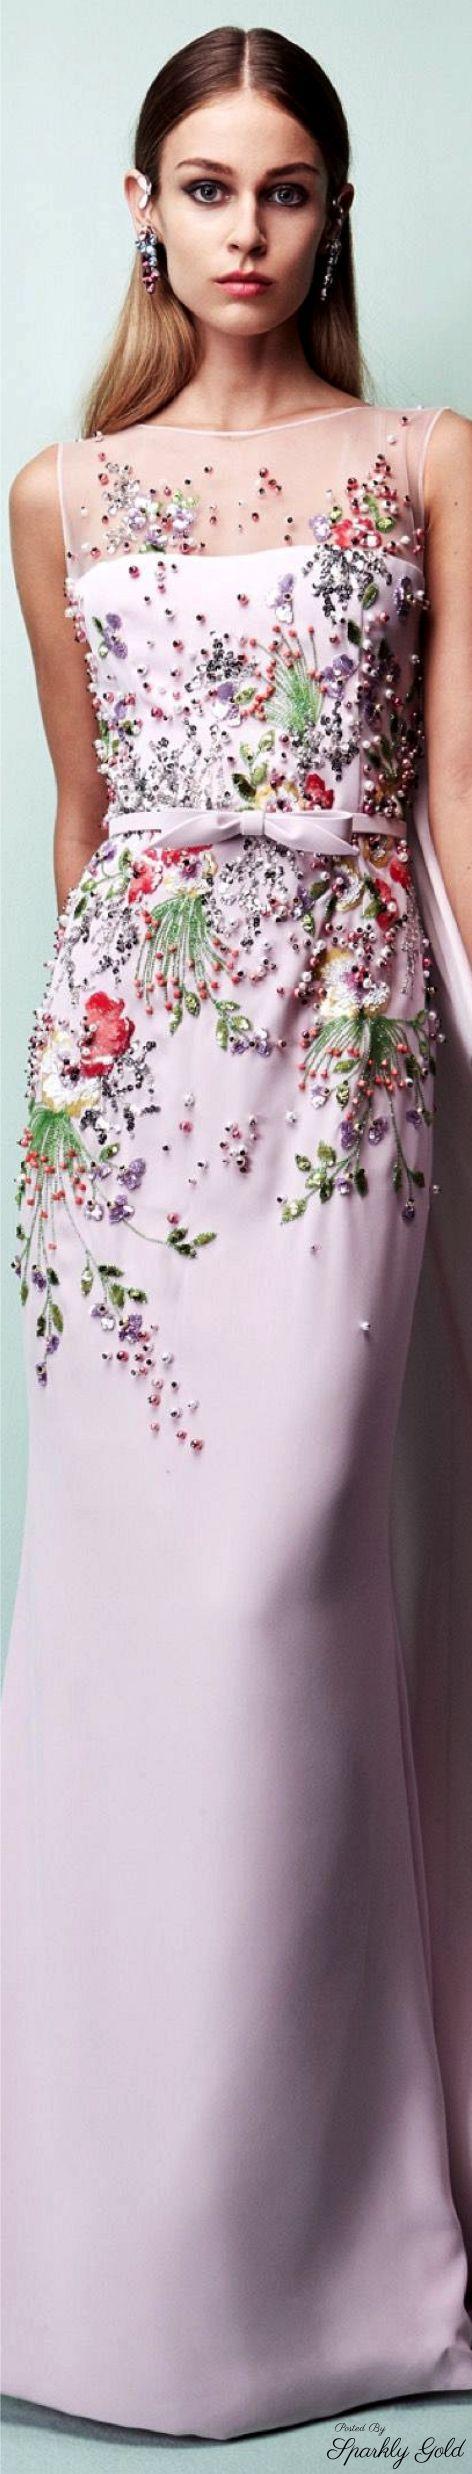 Georges Hobeika Spring 2017 RTW                                                                                                                                                                                 More